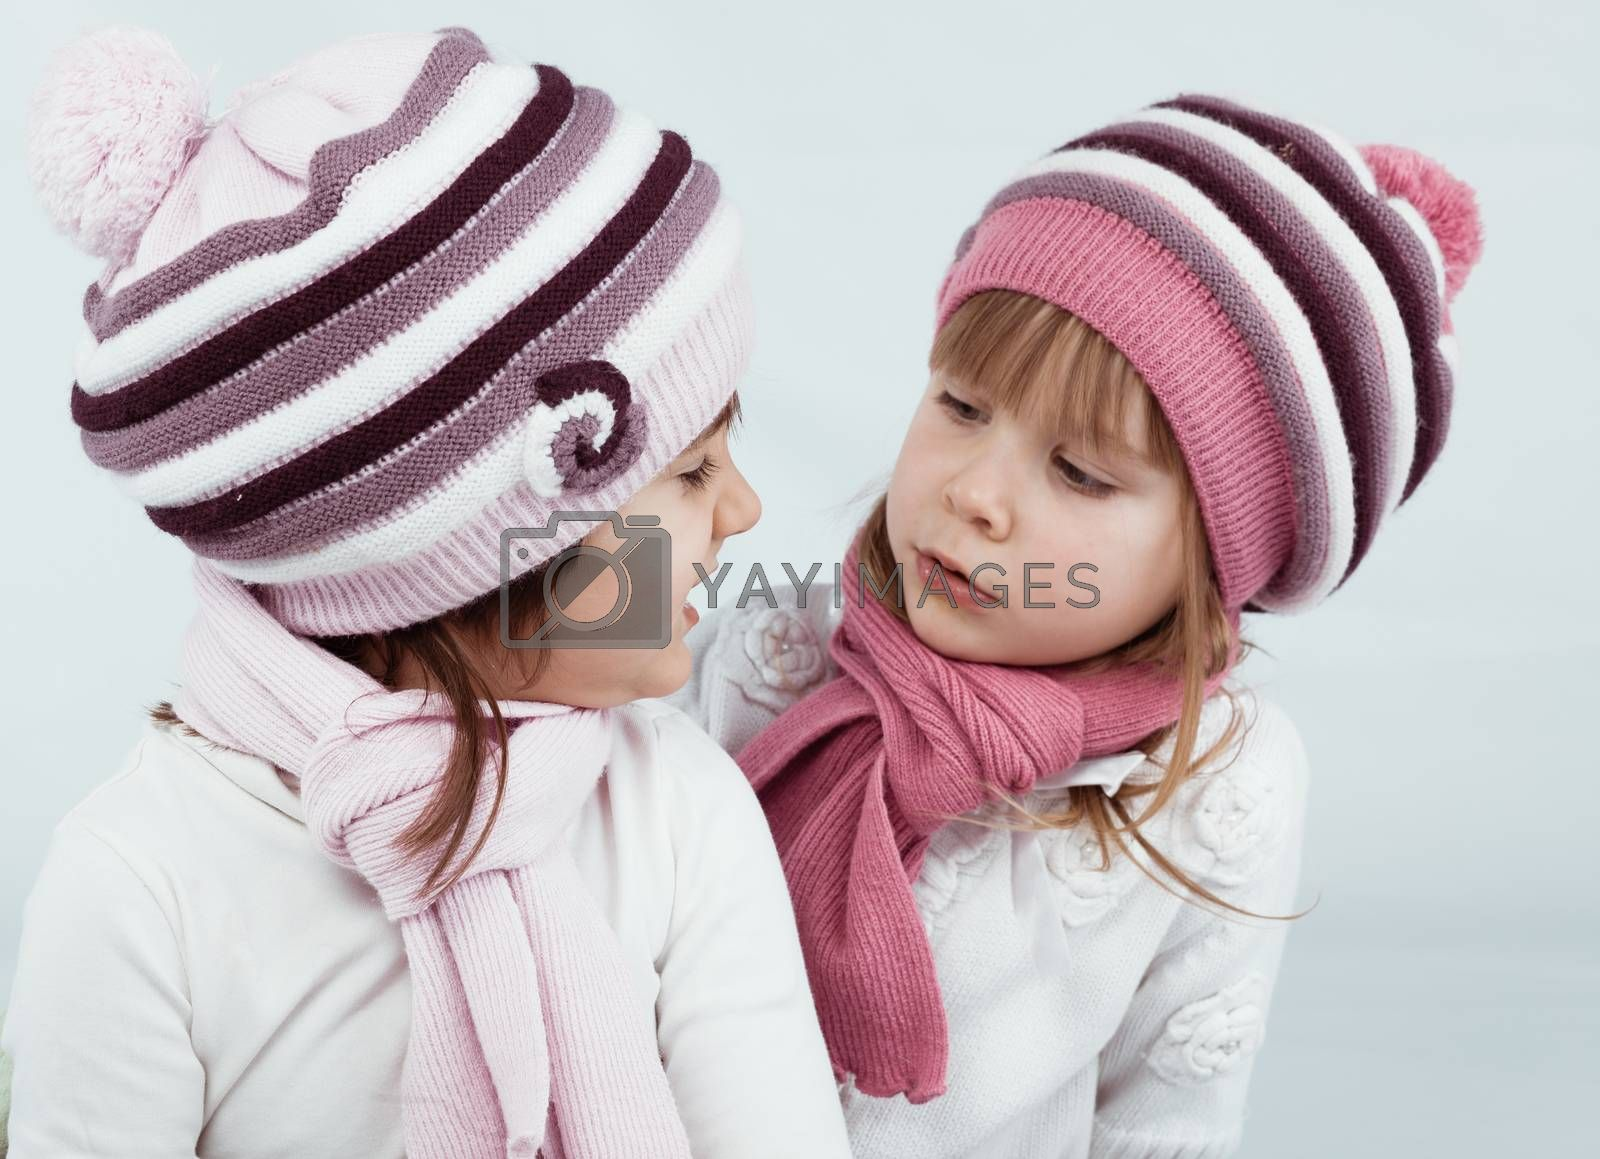 Portrait of two kid girls wearing knitted winter hats and scarves